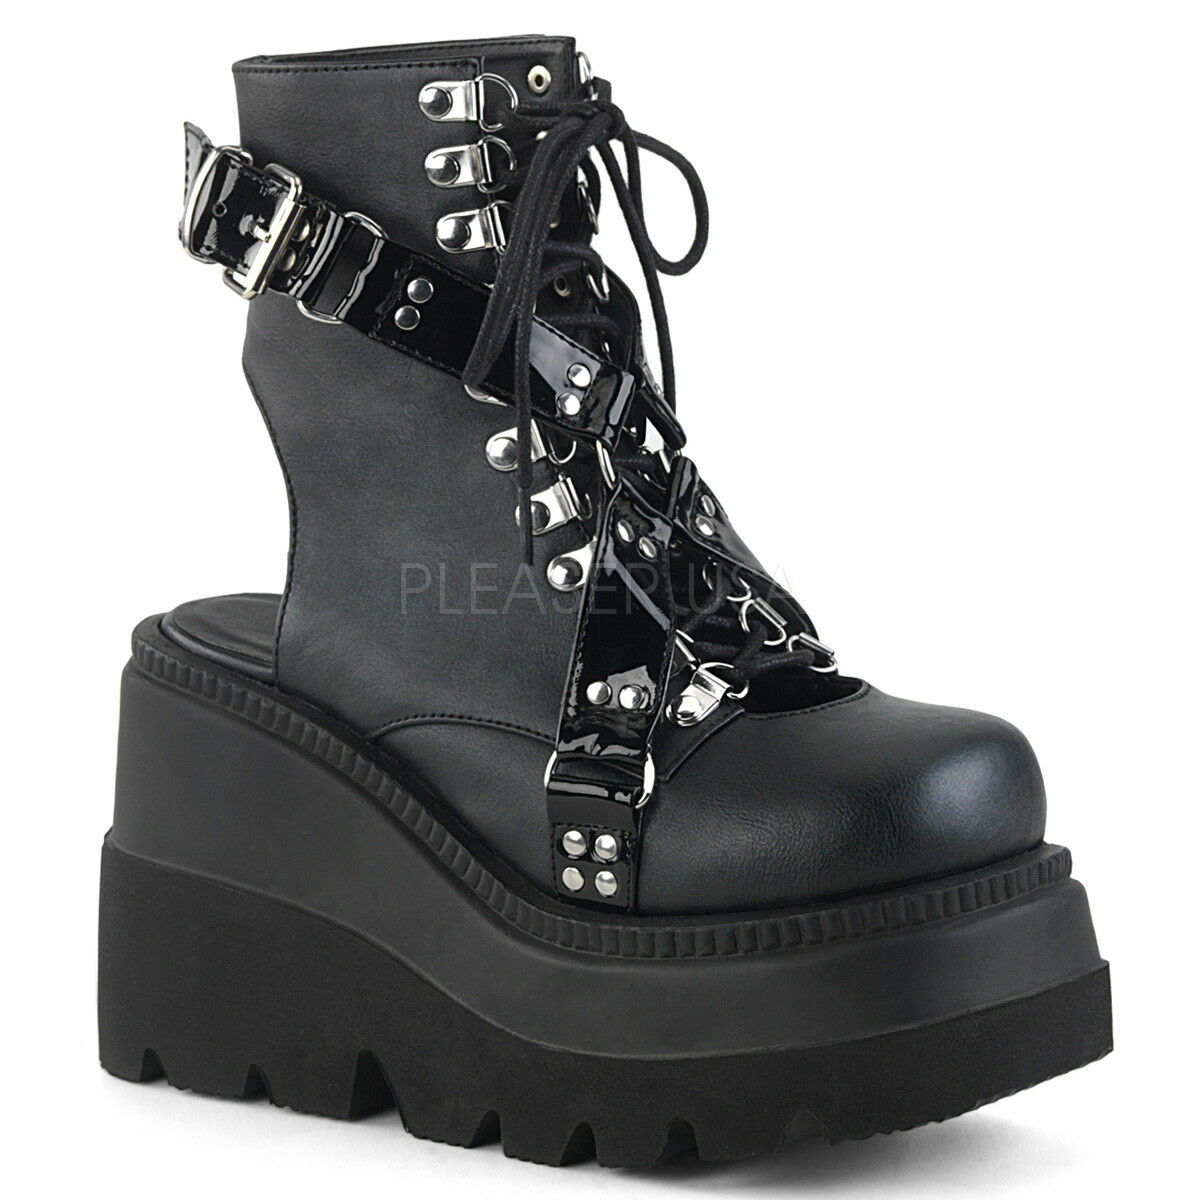 DEMONIA SHAKER-56 Womens Gothic Punk Black Wedge Platform Open Back Ankle Boots